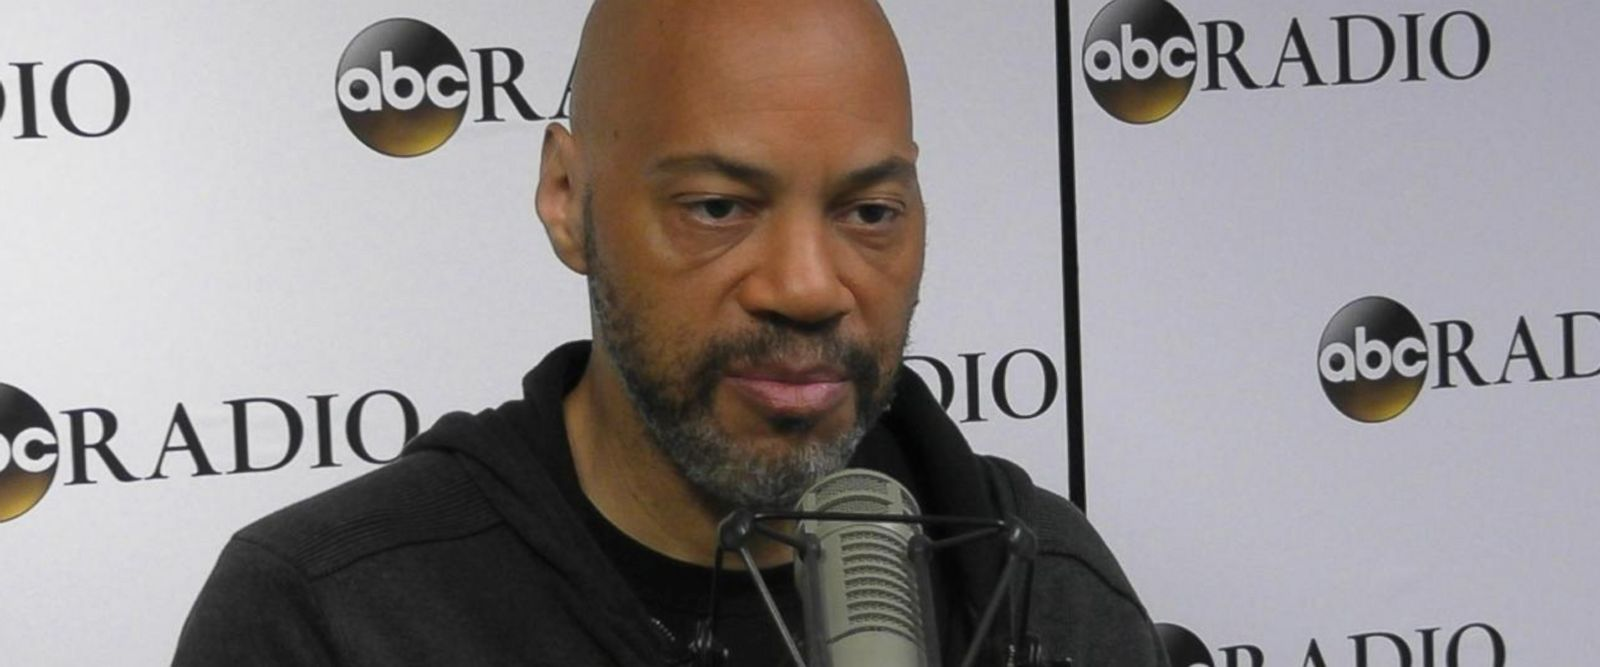 VIDEO: John Ridley discusses his L.A. Riots documentary 'Let It Fall'